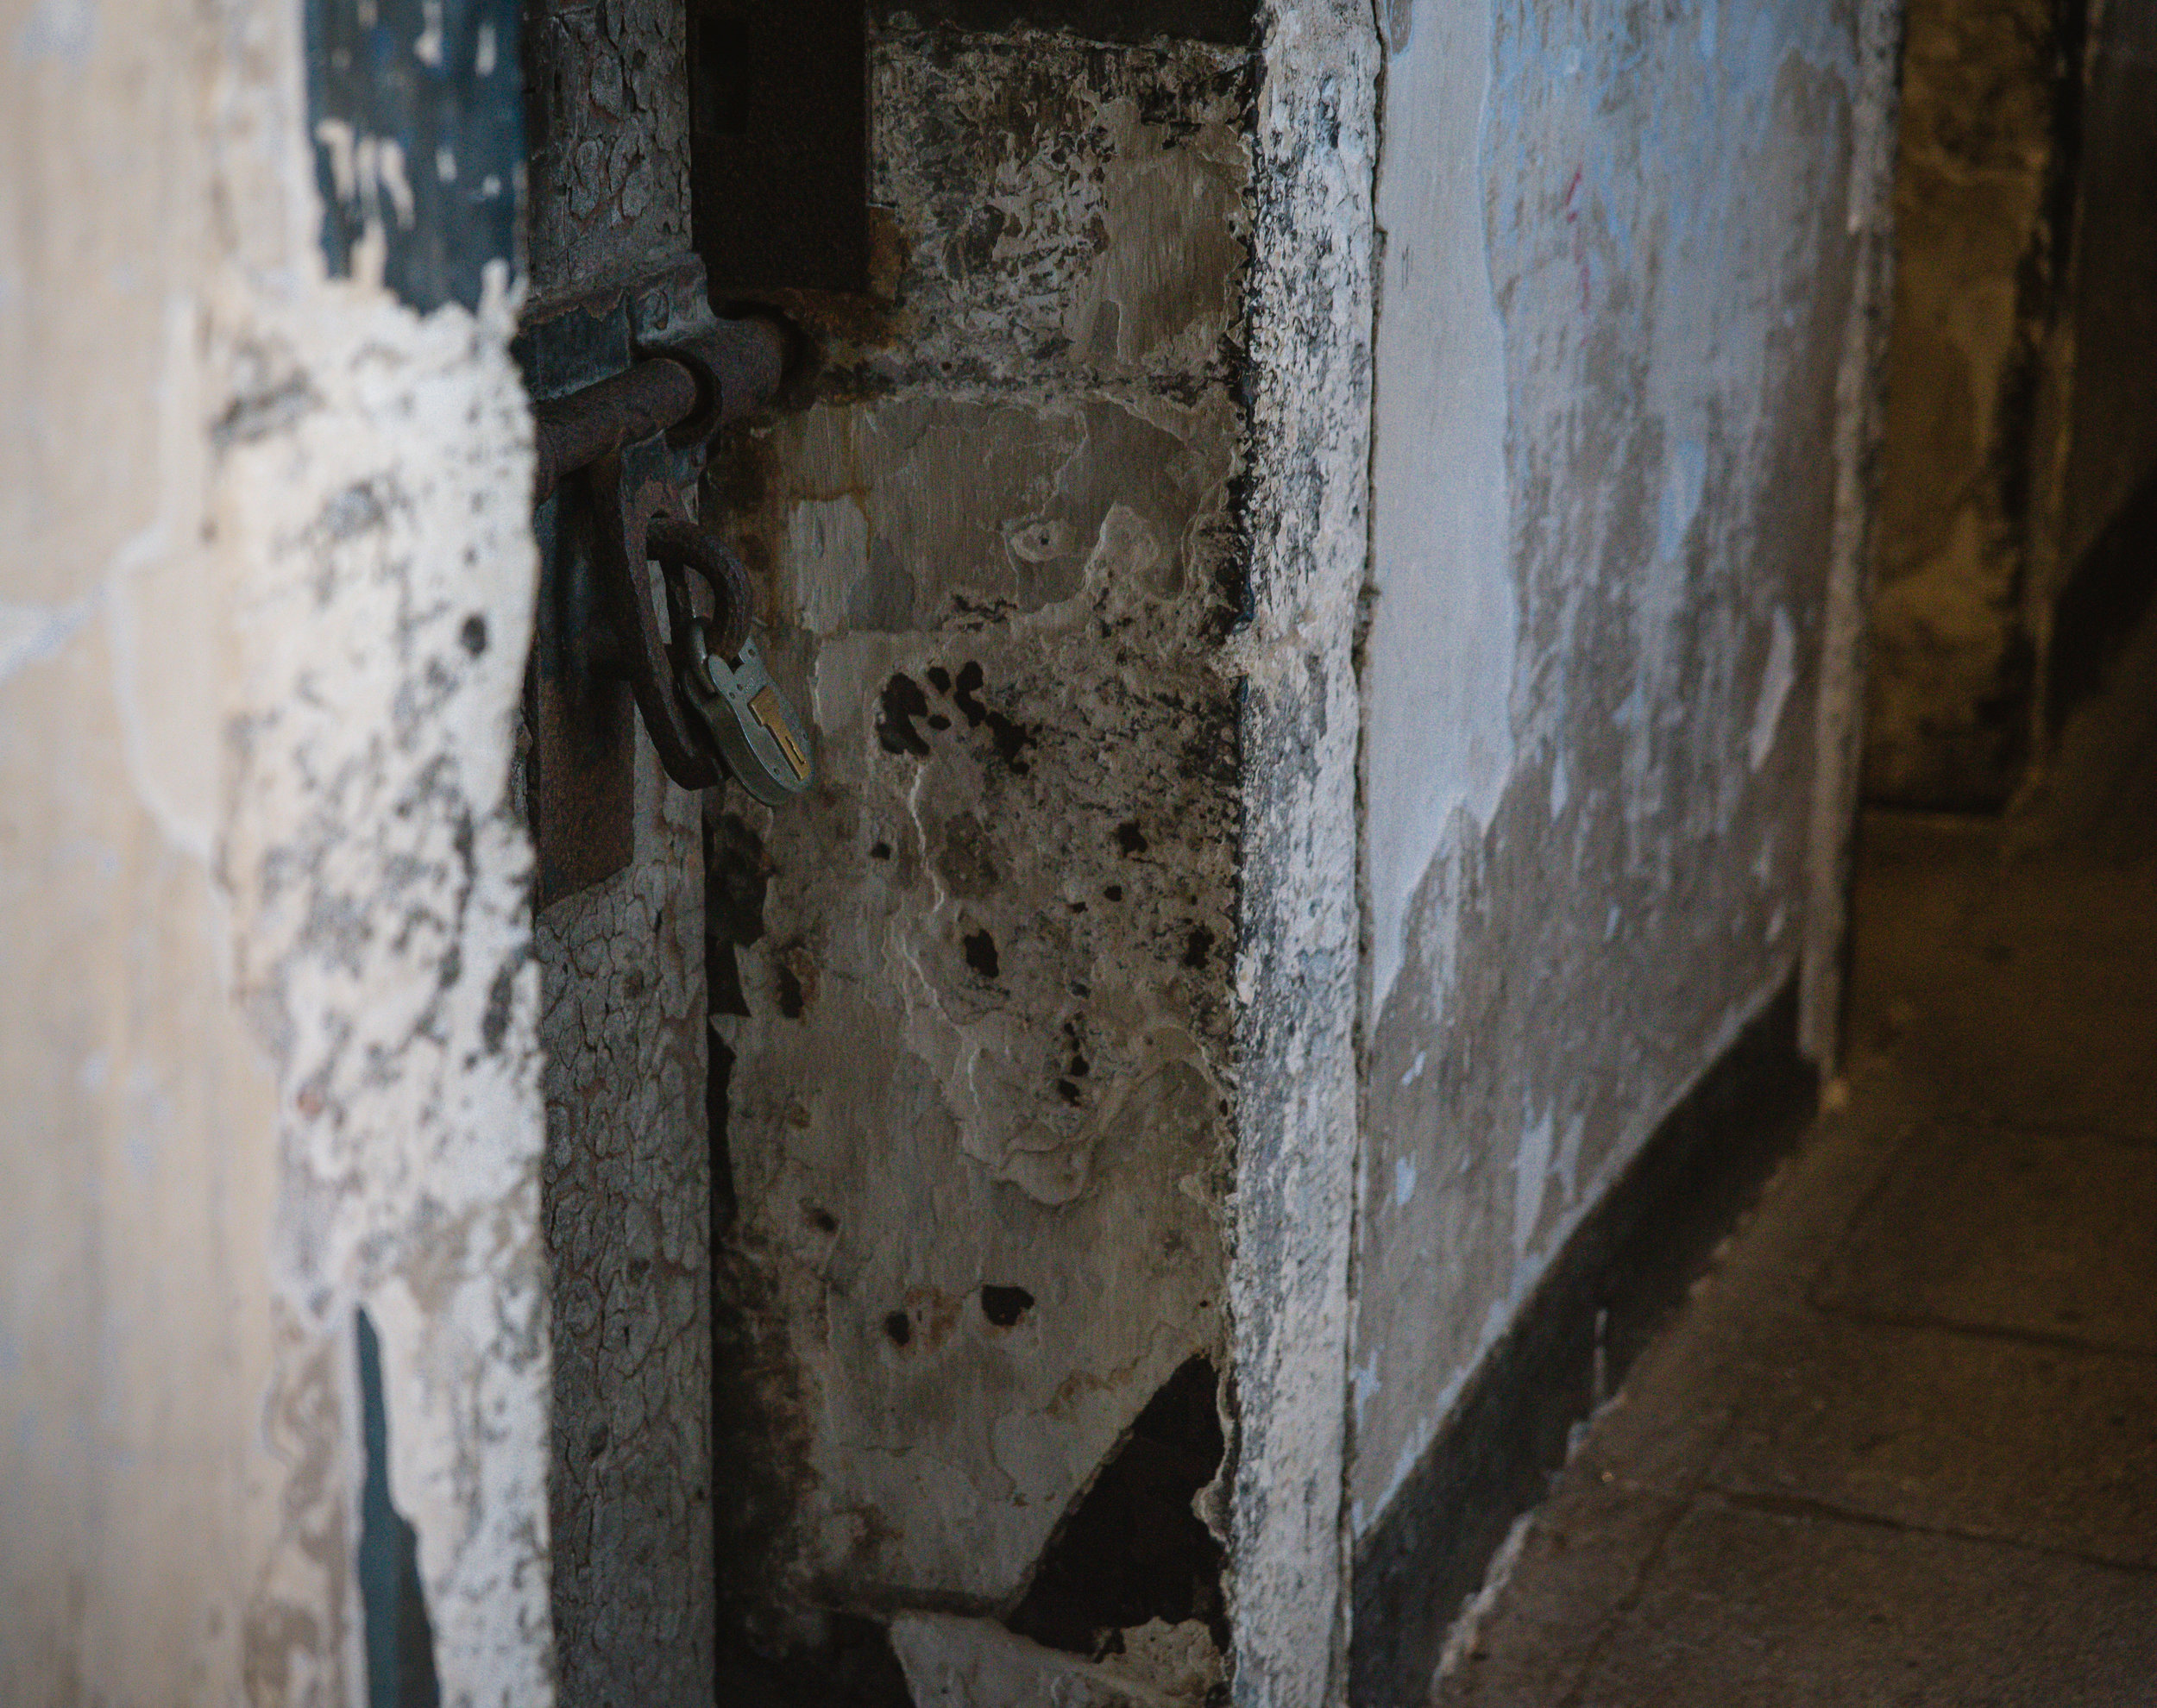 A lock rests on the door of one of the cells.